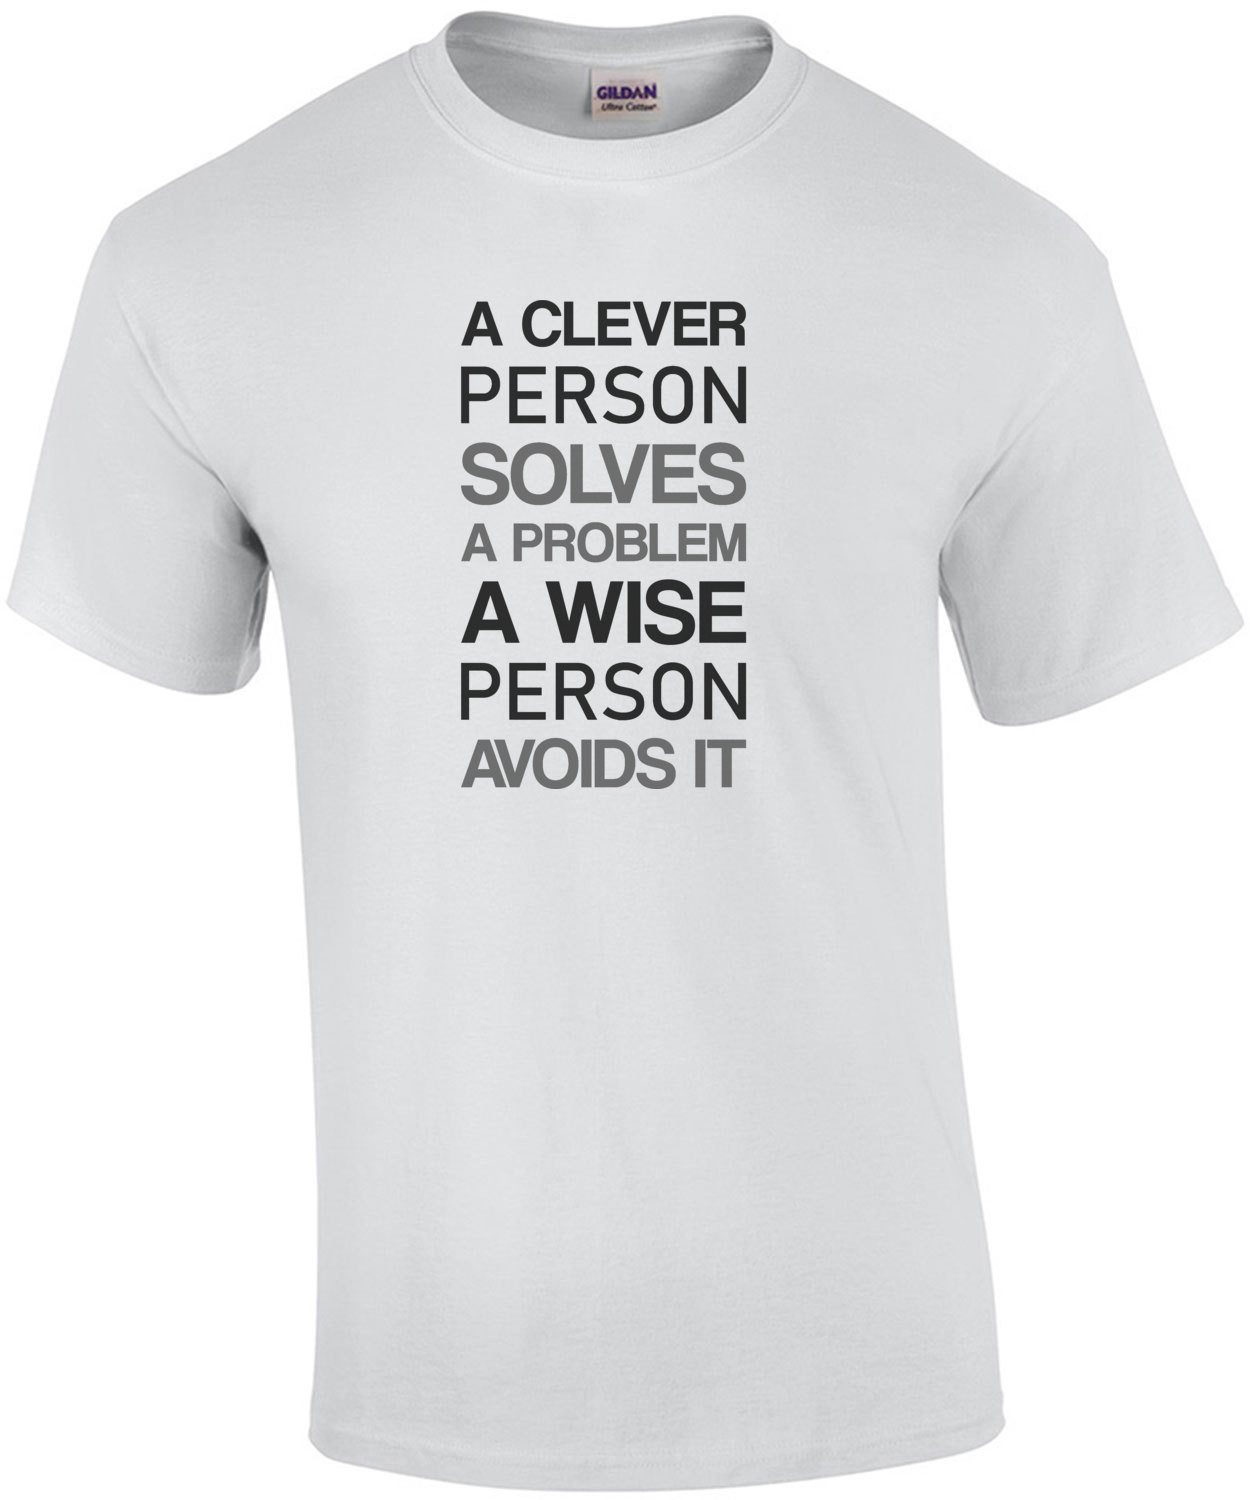 A clever person solves a problem a wise person avoids it - funny t-shirt